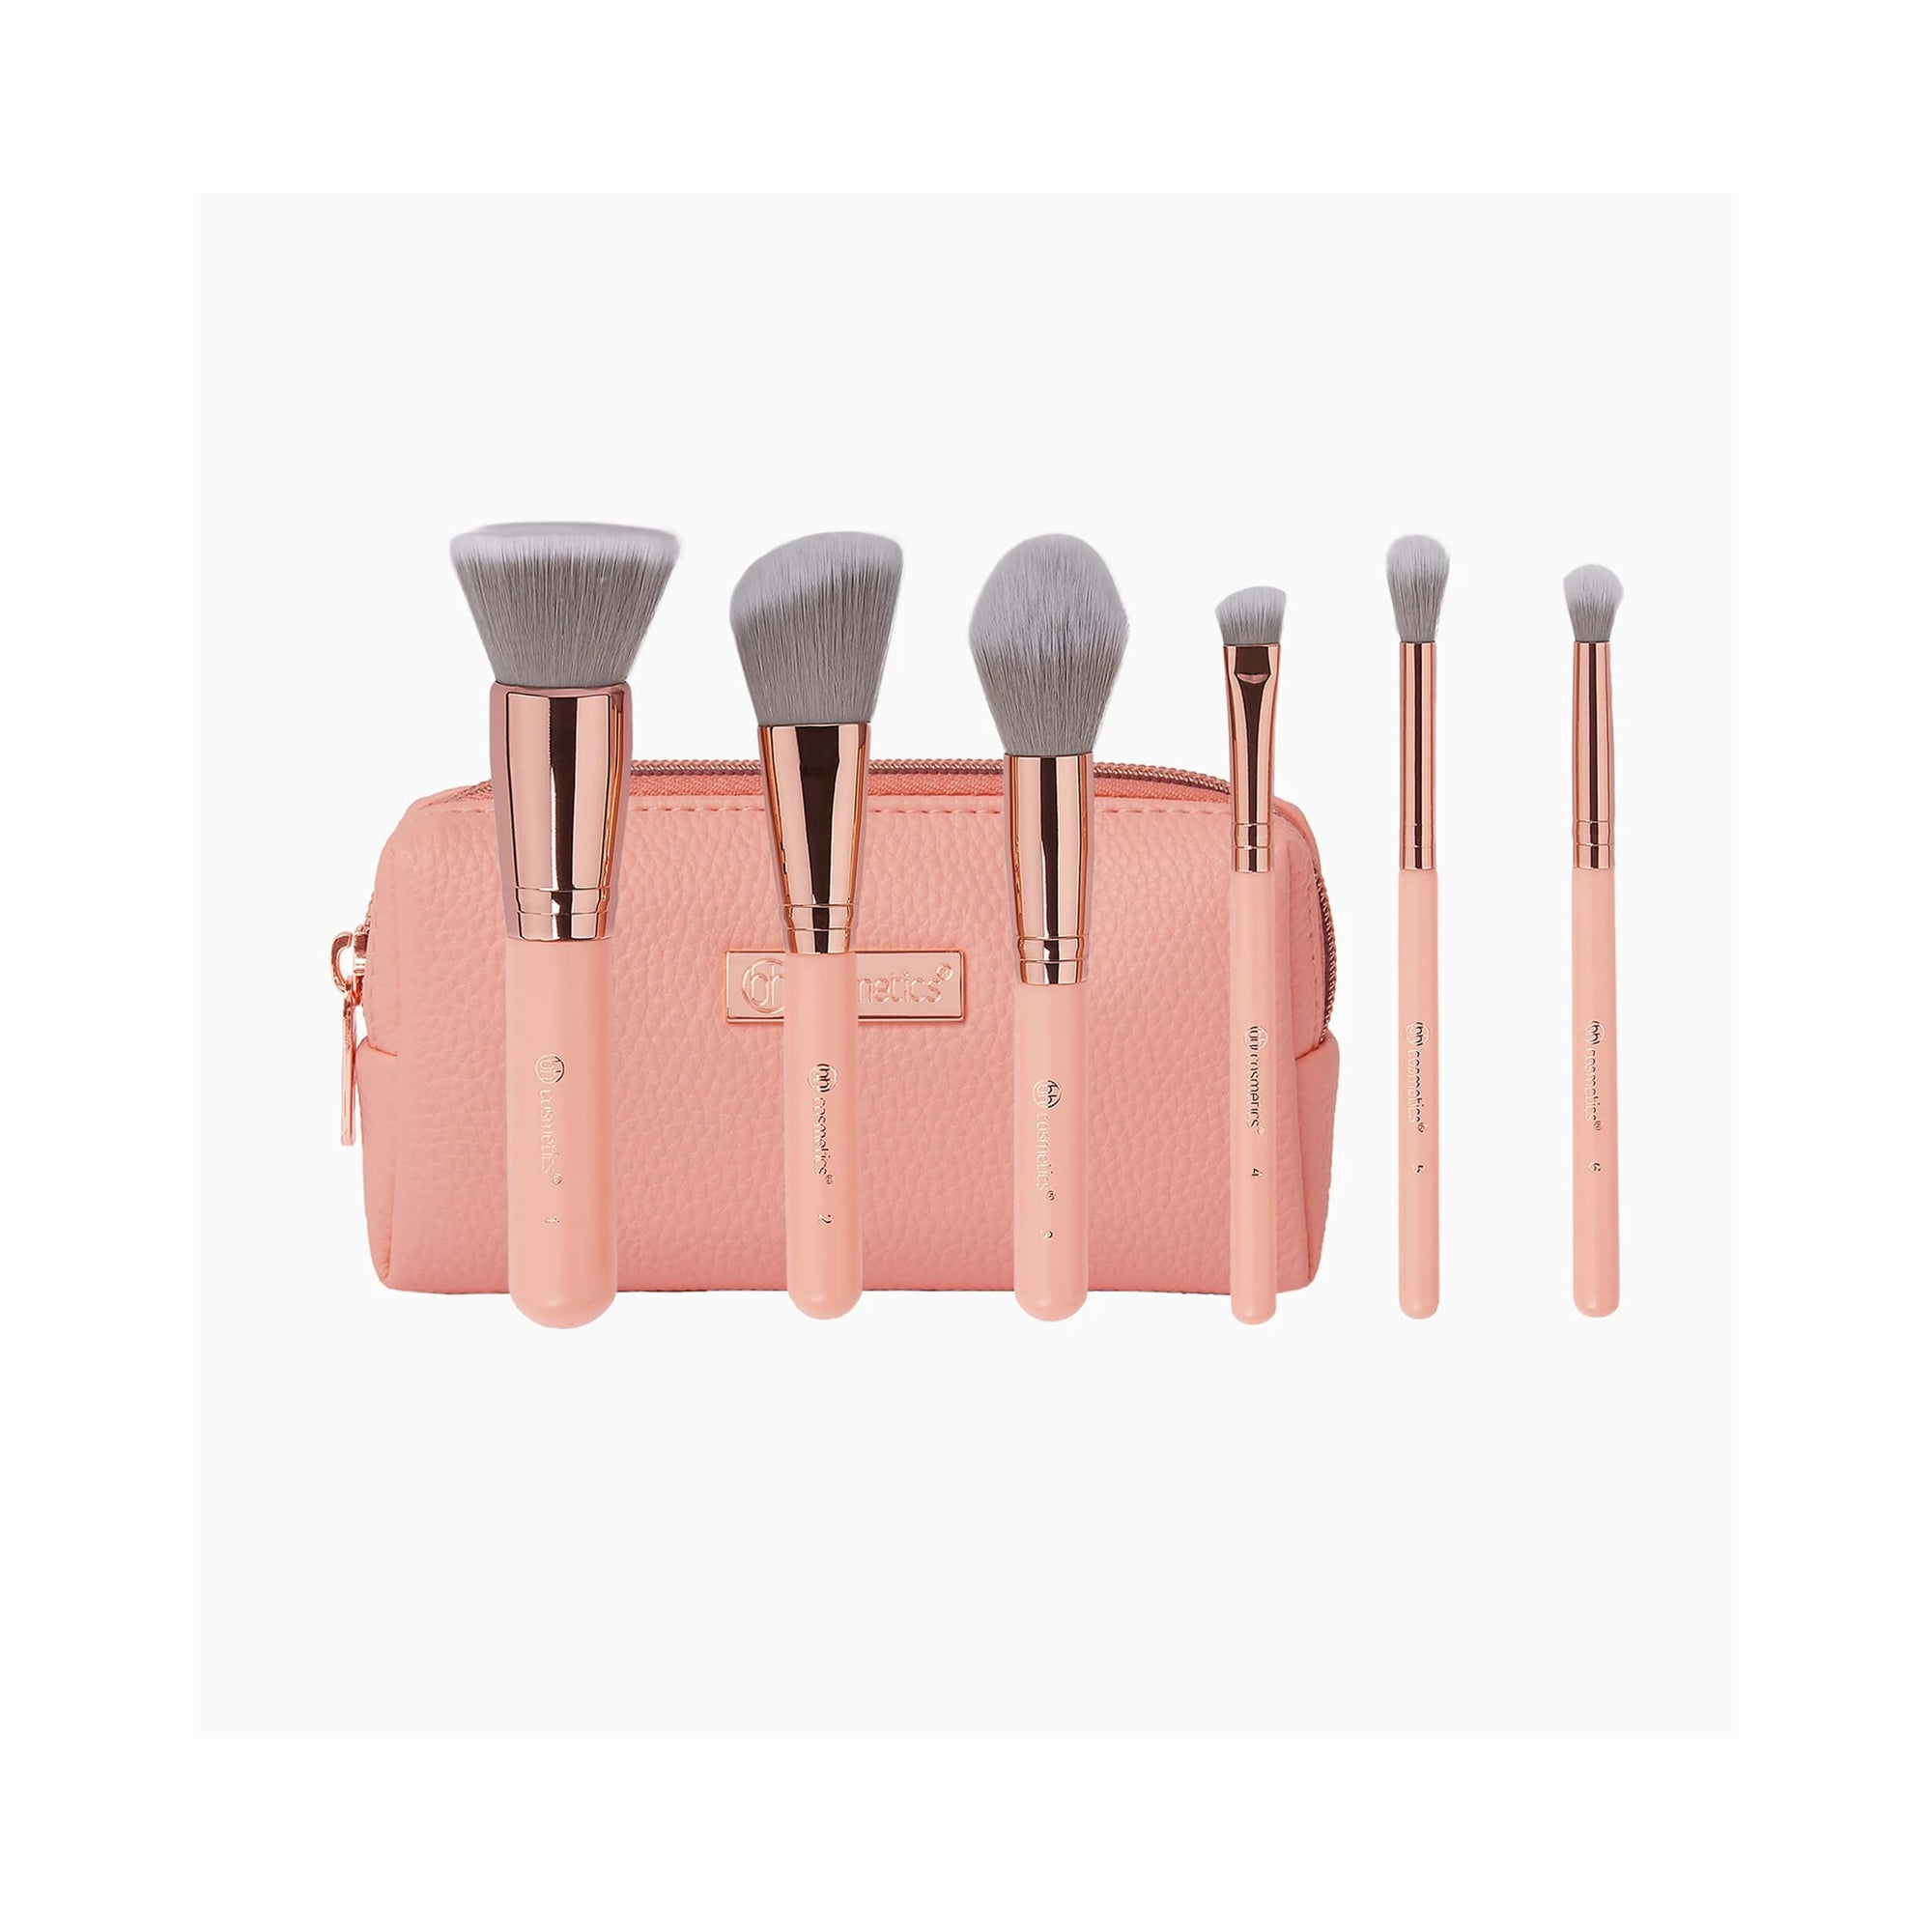 BH Cosmetics Petite Chic 6 Piece Mini Brush Set with Bag